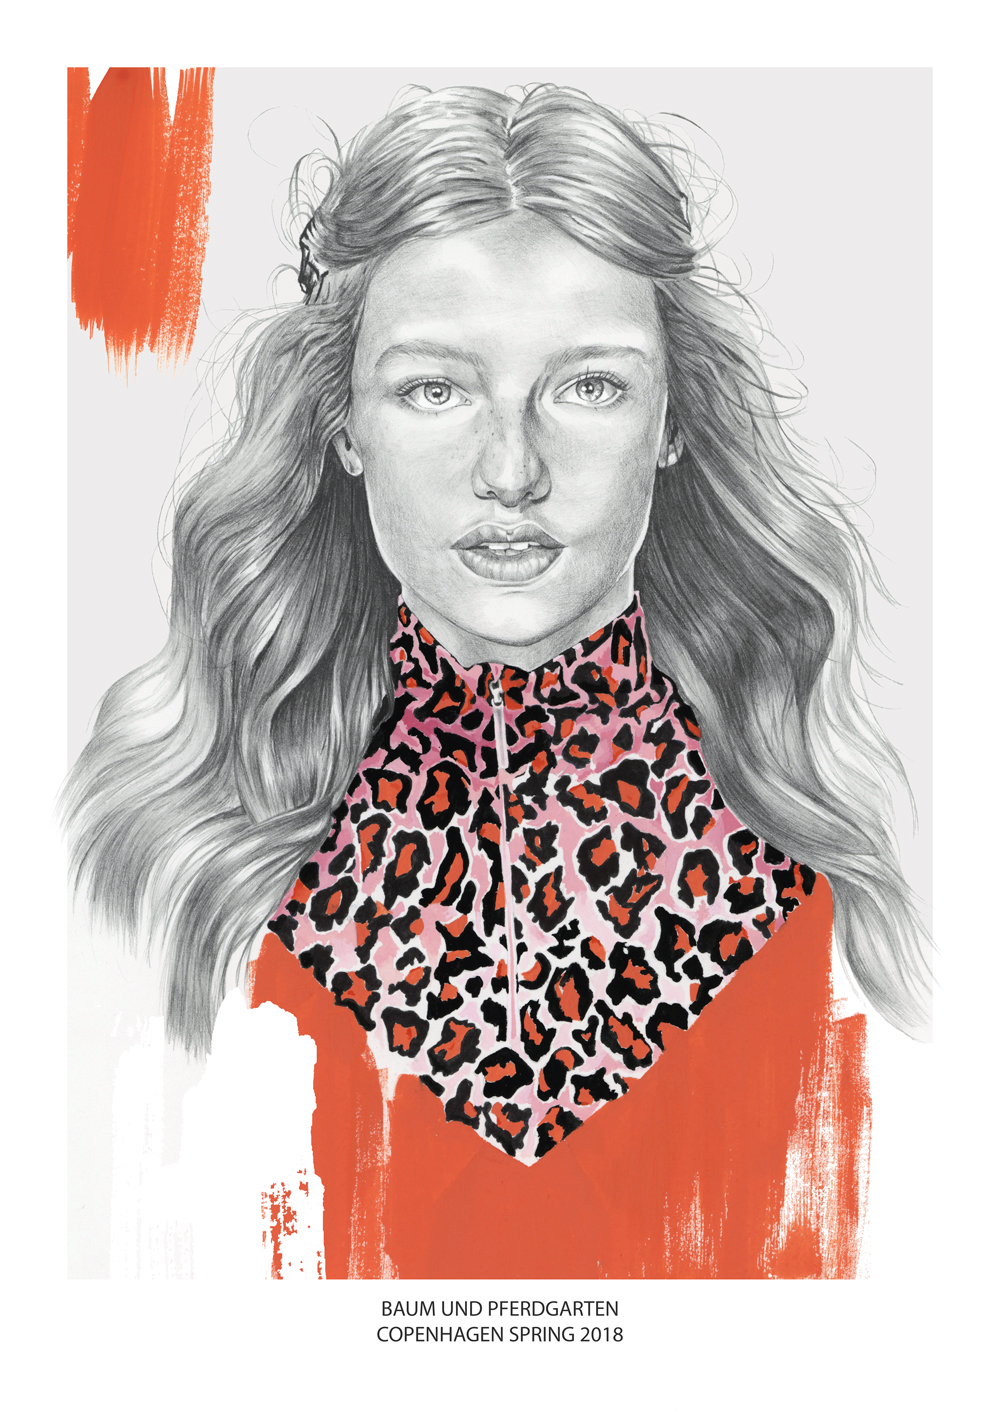 Baum and Pfedgarten fashion illustration